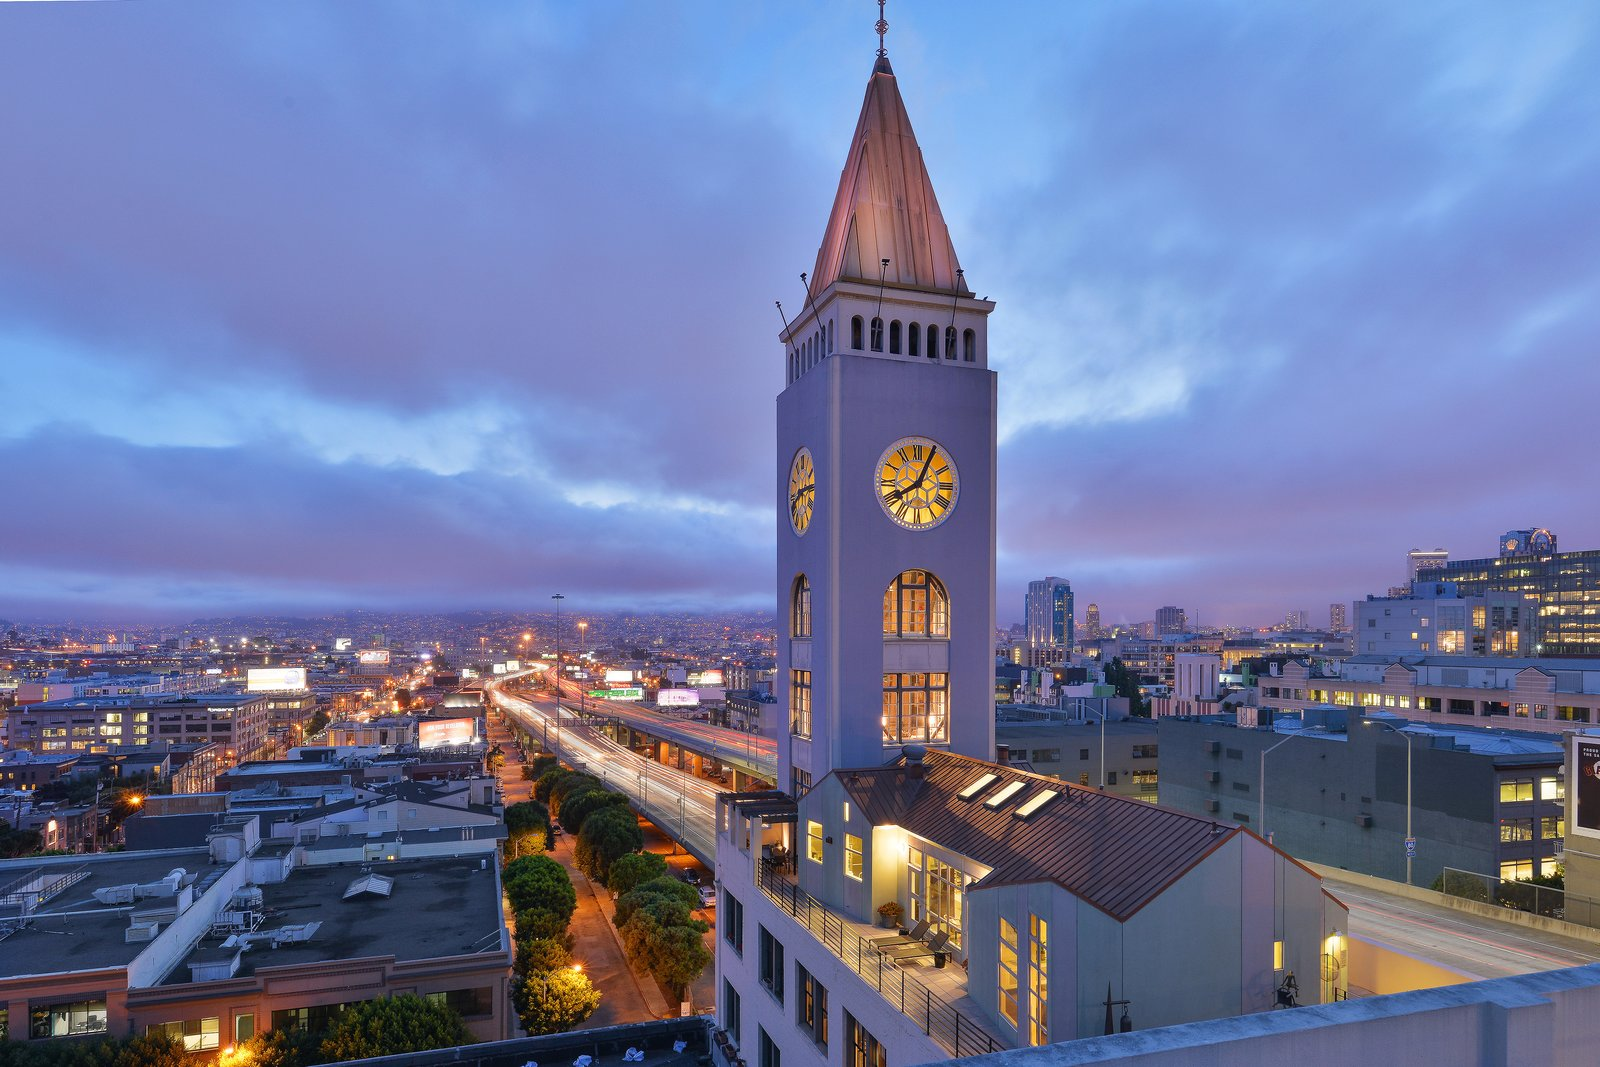 Once the sun sets, the Clocktower Penthouse serves as a beautiful beacon of light.